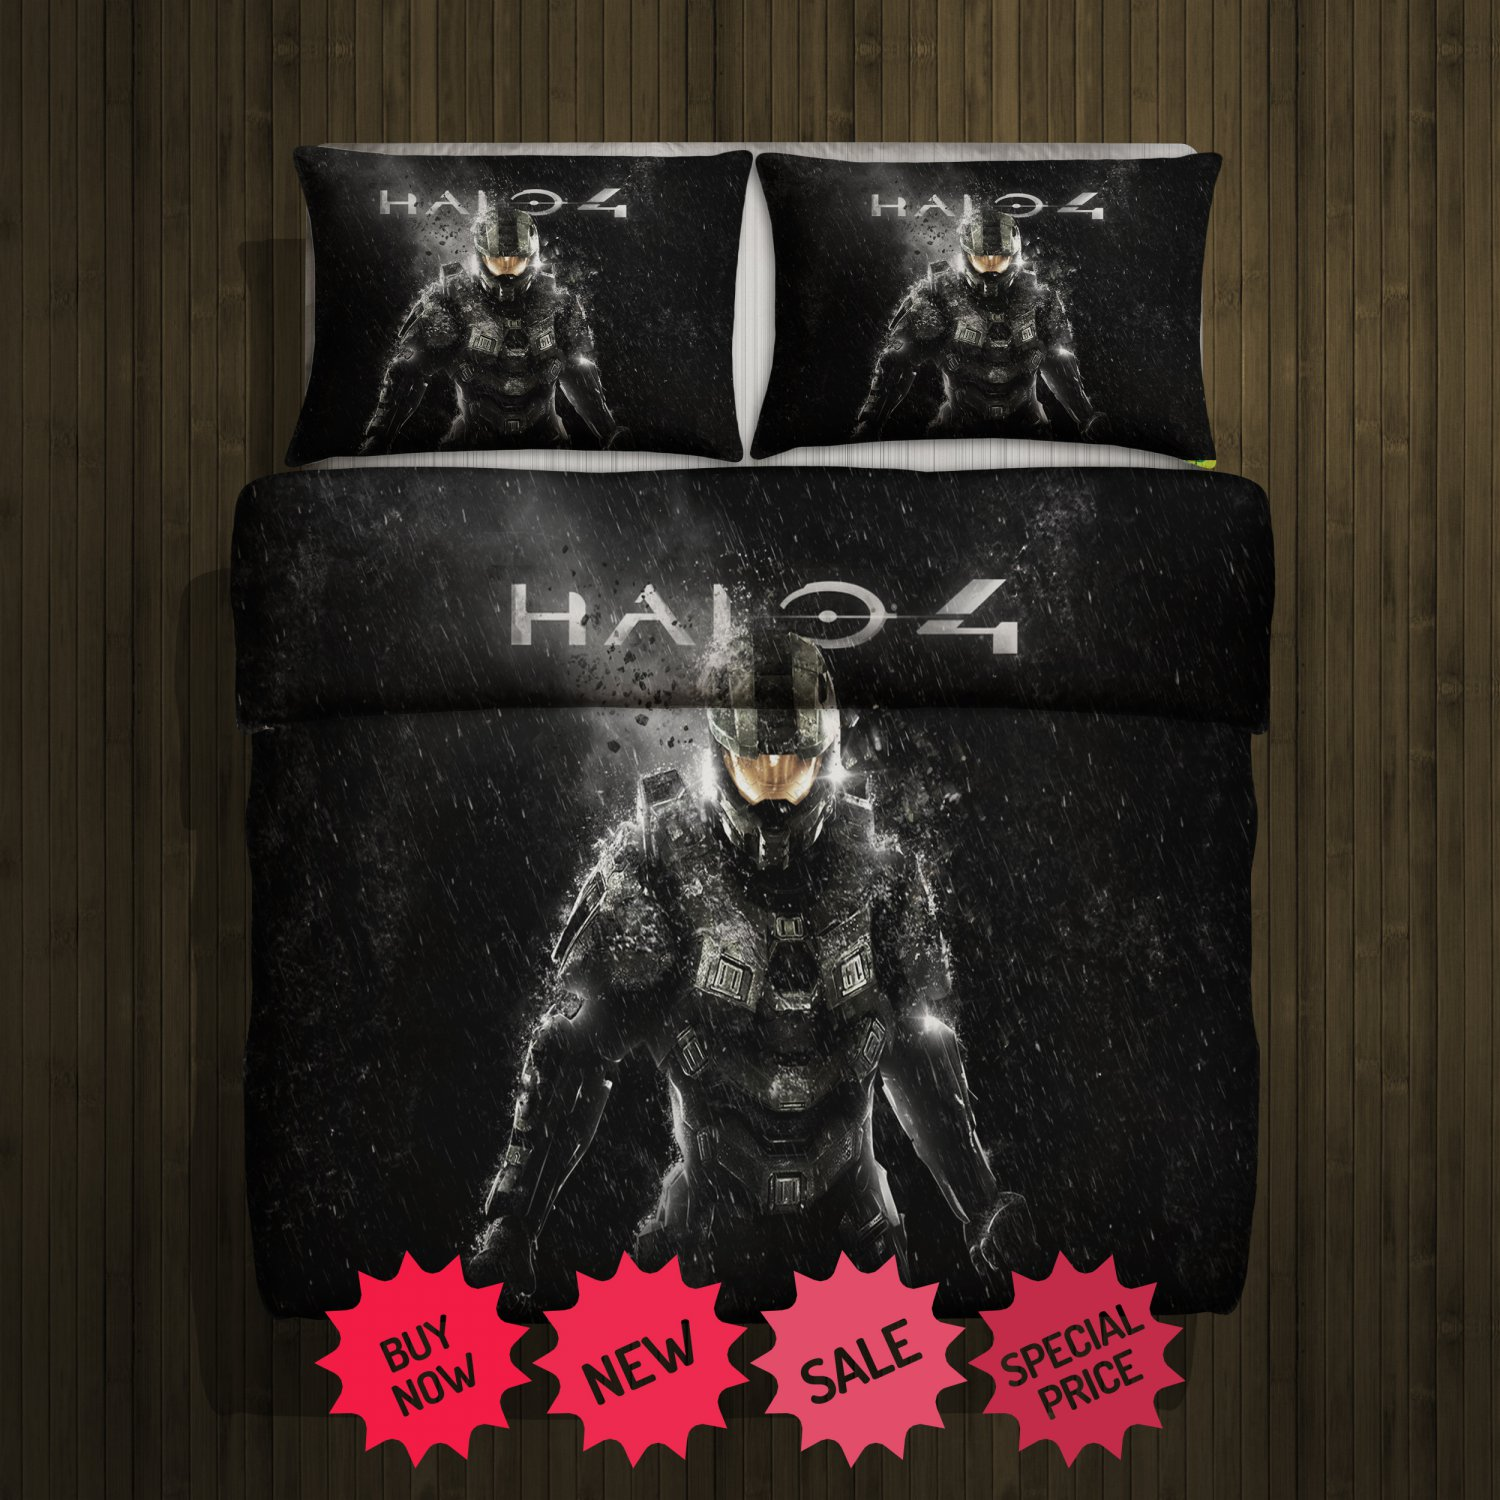 Halo 4 Blanket Large & 2 Pillow Cases #85700294,85700297(2)